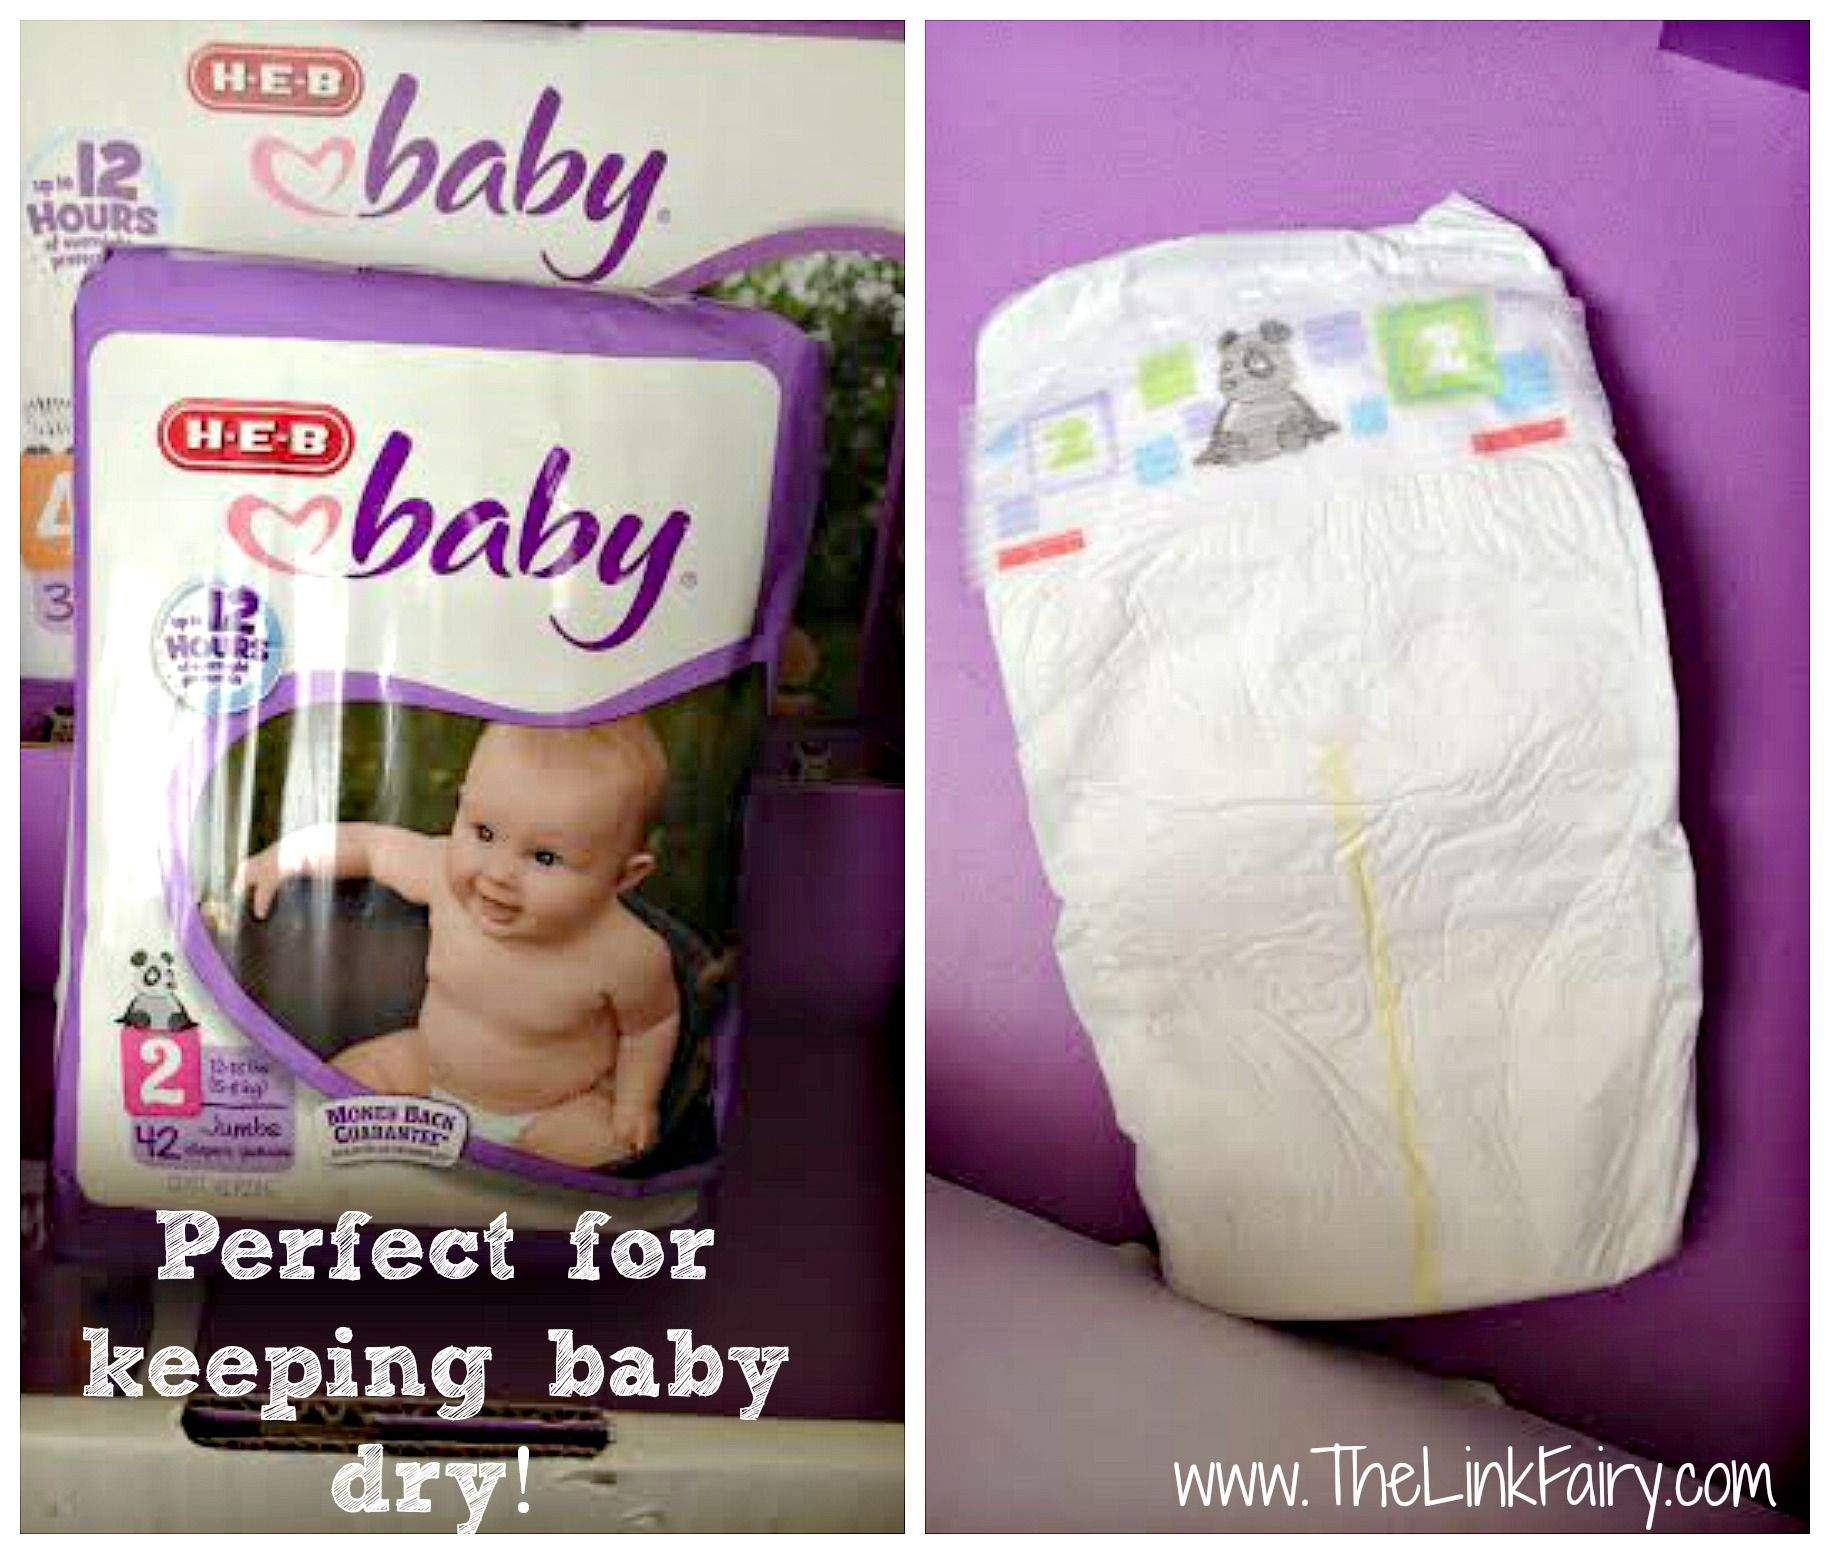 Huggies pull ups diapers car tuning - Keep Your Baby Dry With Newly Improved H E B Baby Diapers Hebbabydiapers